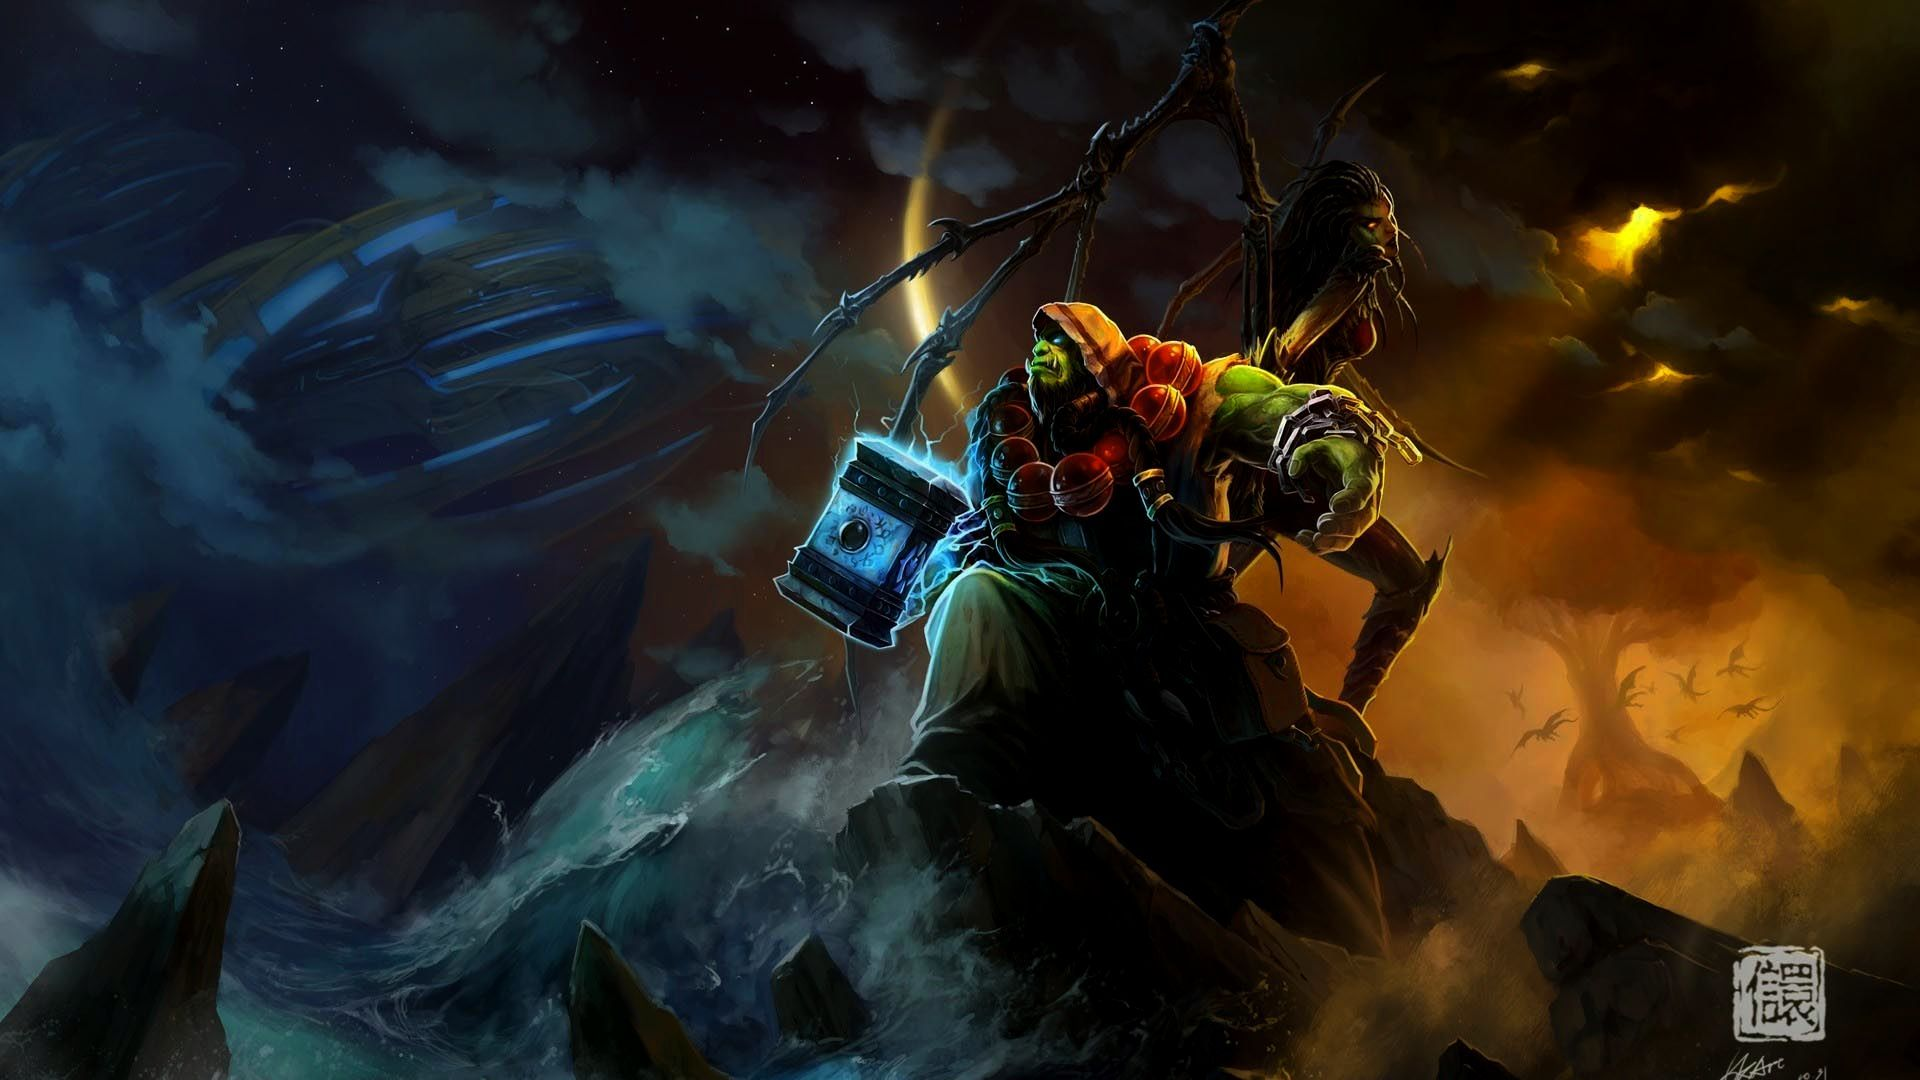 World Of Warcraft Shaman Wallpaper Wallfree 100 Free High Definition Wallpaper High Definition Background 4k Wallpaper 4k Desktop Back World Of Warcraft